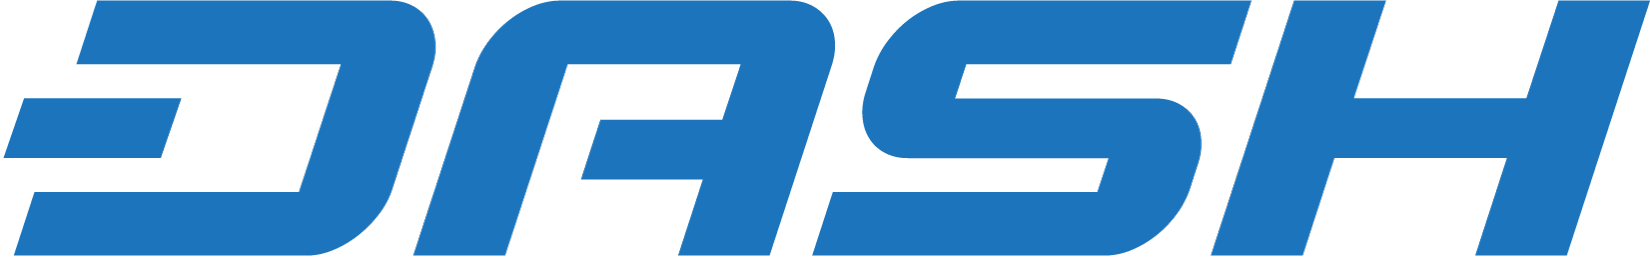 Dash Freewallet logo